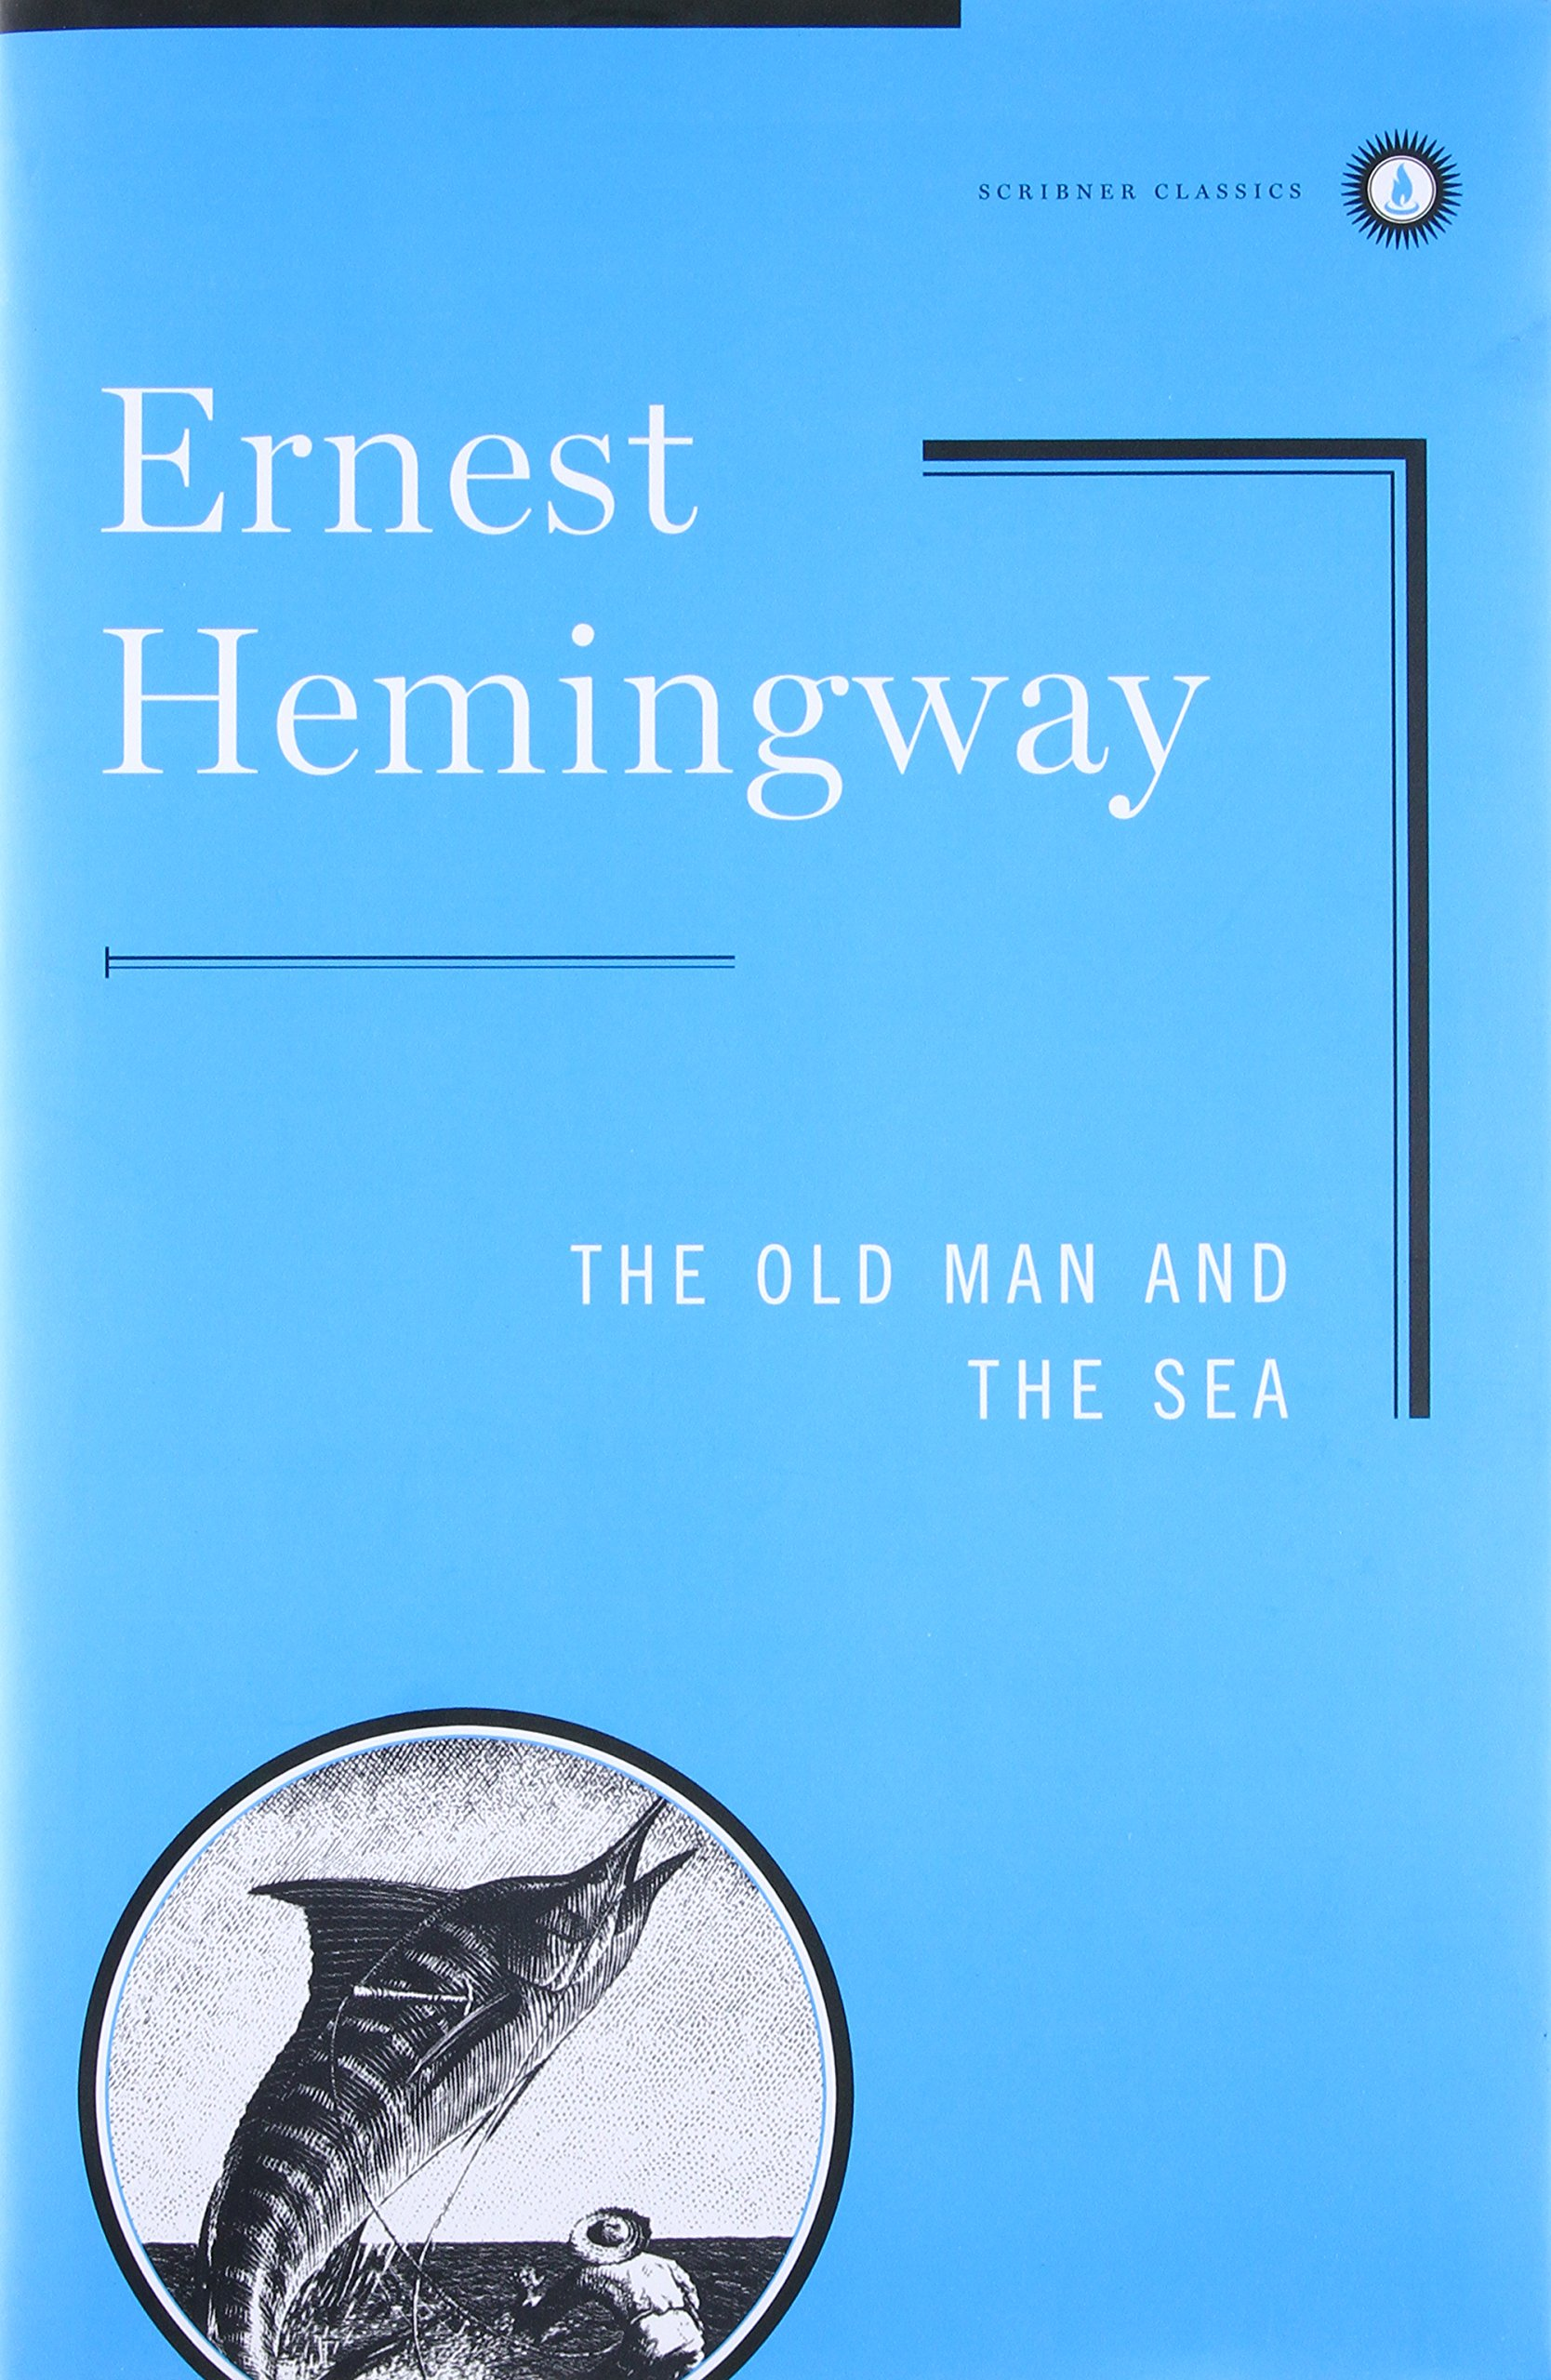 The Old Man And The Sea (Scribner Classics) Hardcover – Special Edition, June 10, 1996 Ernest Hemingway 0684830493 9780684830490 Allegories